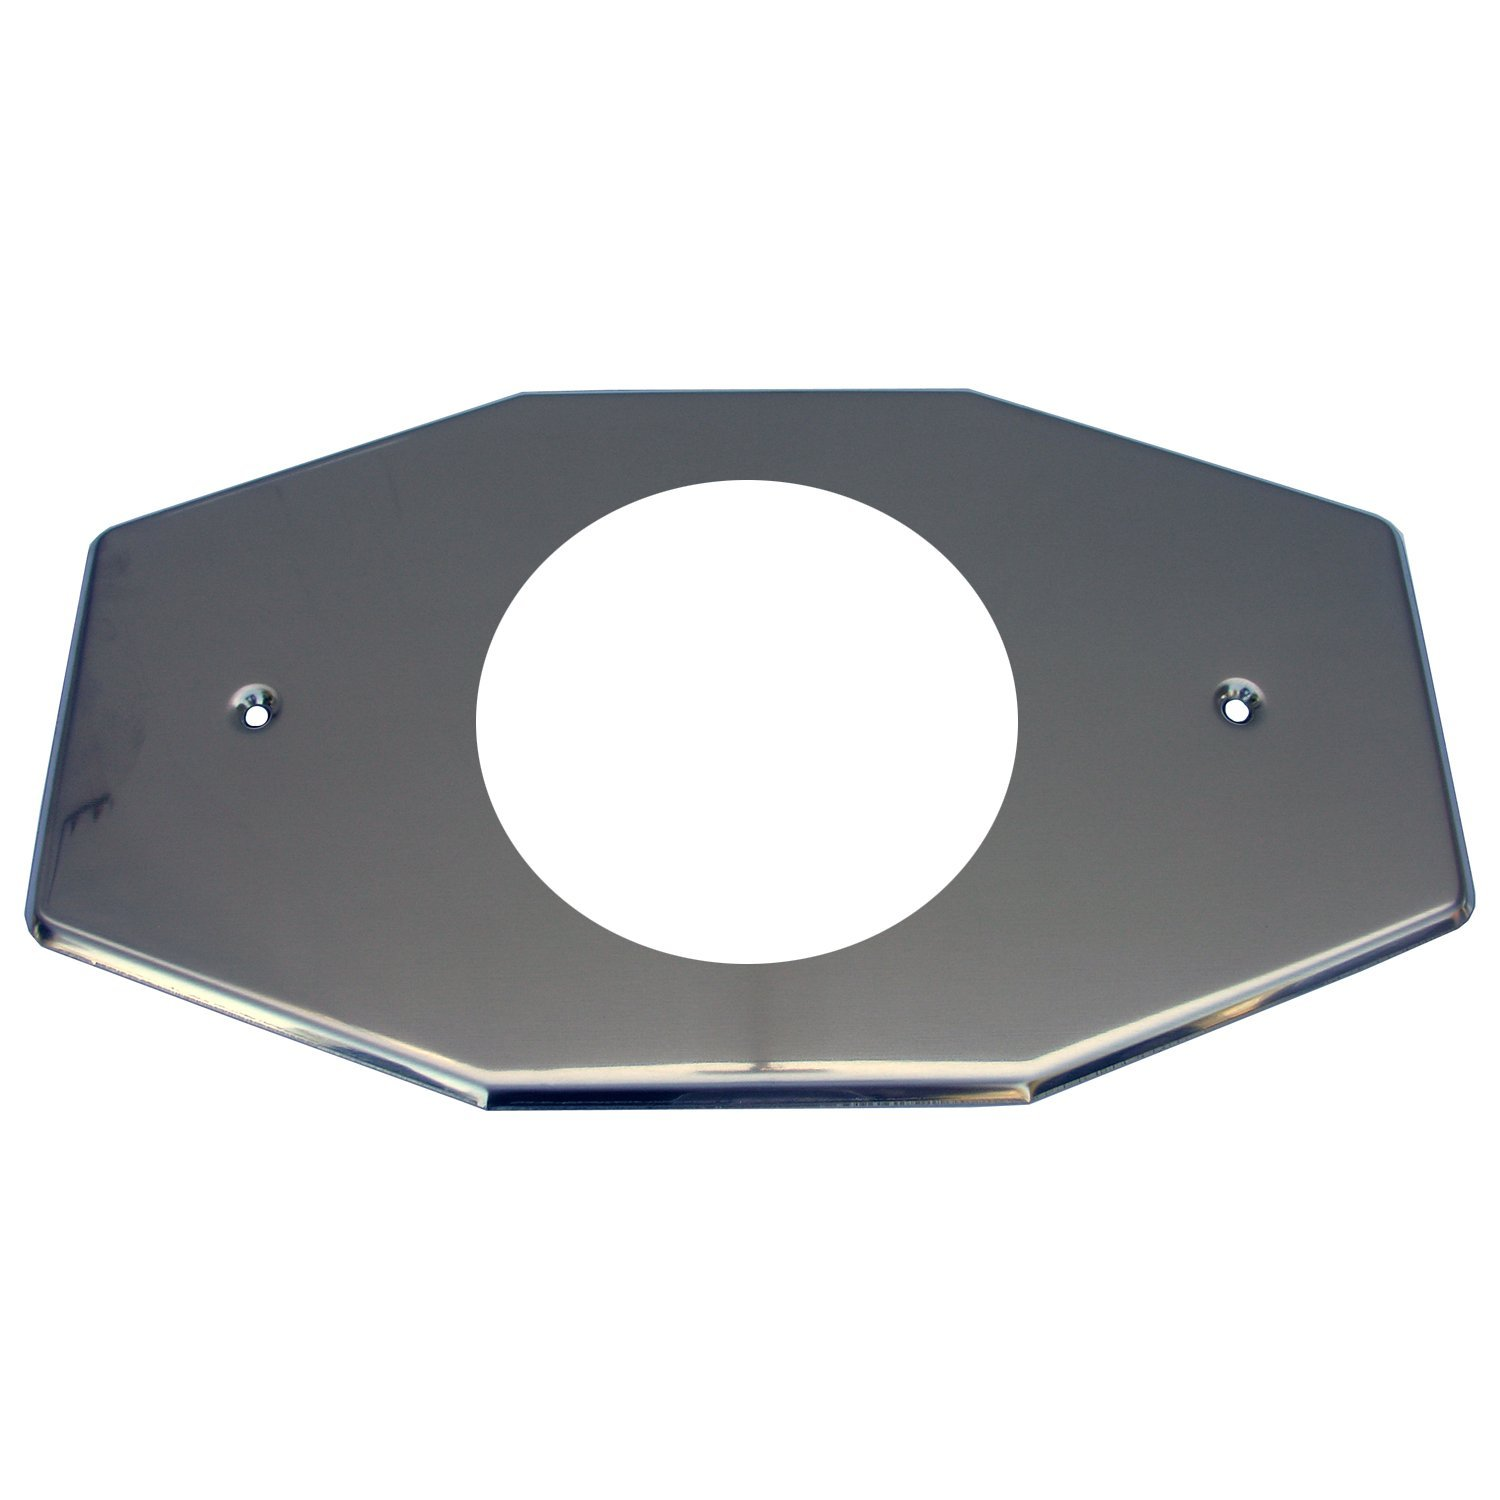 Cheap Remodel Plate Find Remodel Plate Deals On Line At